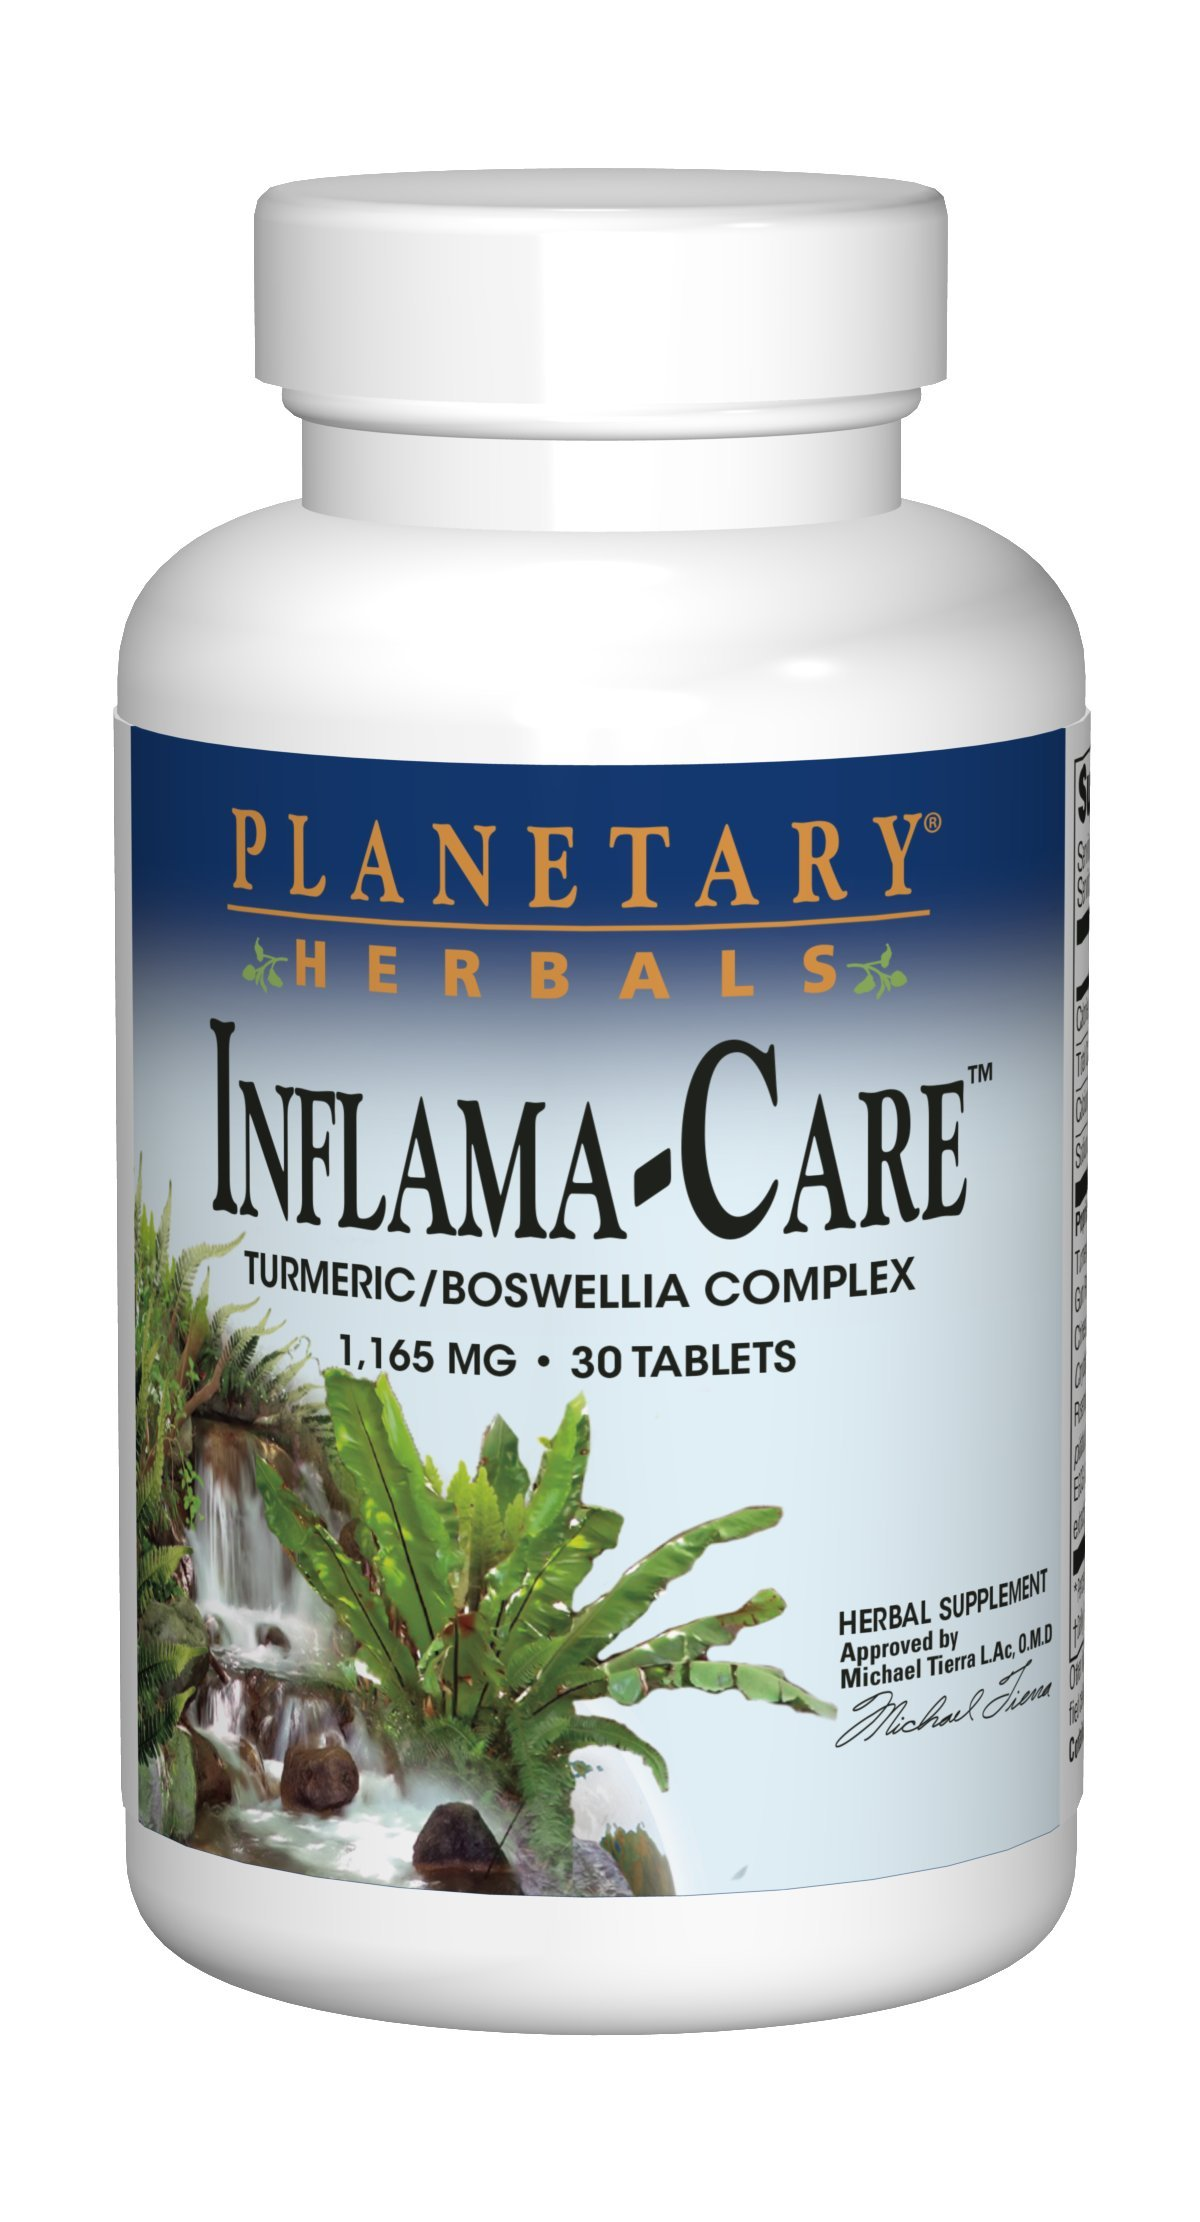 Planetary Herbals Inflama-Care 1165mg Turmeric/Boswellia Complex - 30 Tablets